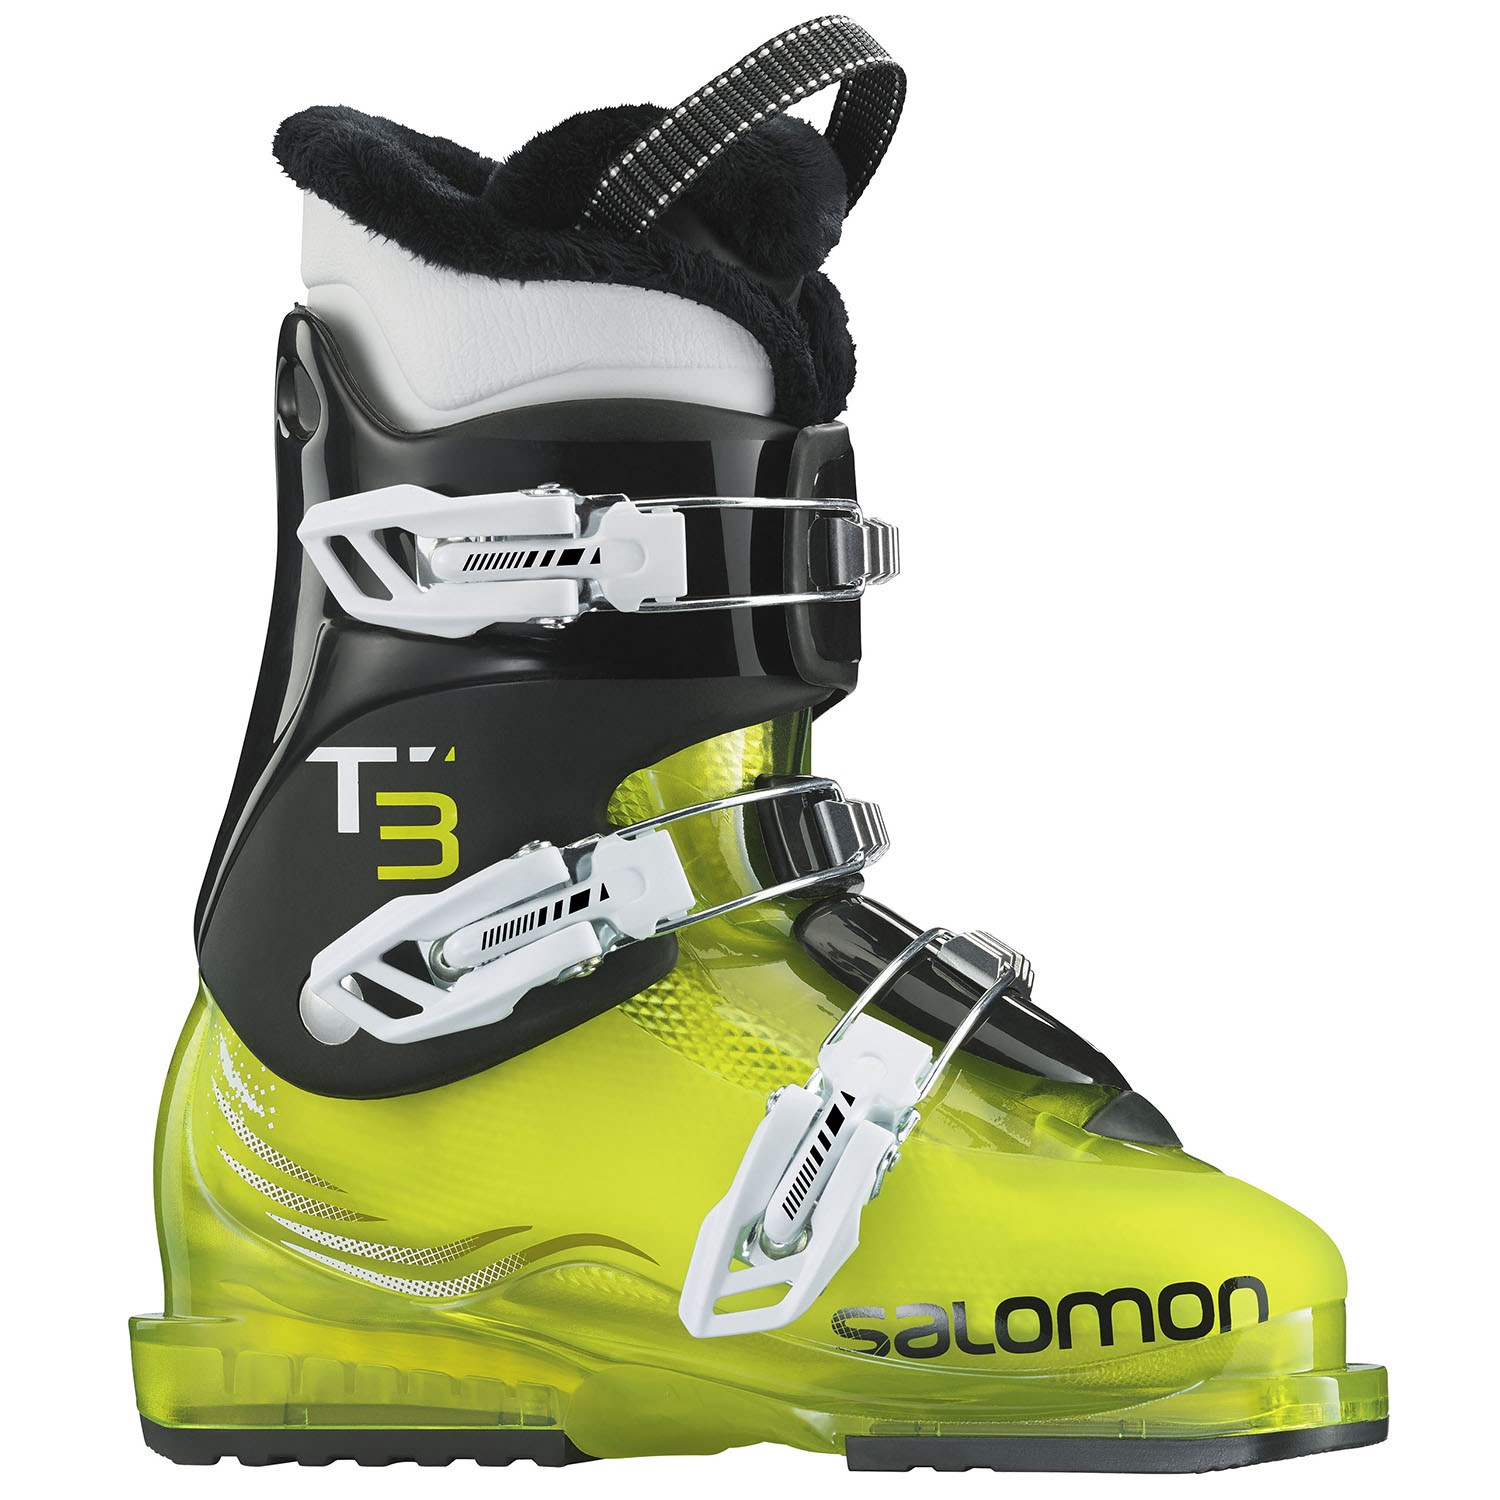 Volkl RTM Jr Skis + 3Motion Jr 7.0 Bindings + Salomon T3